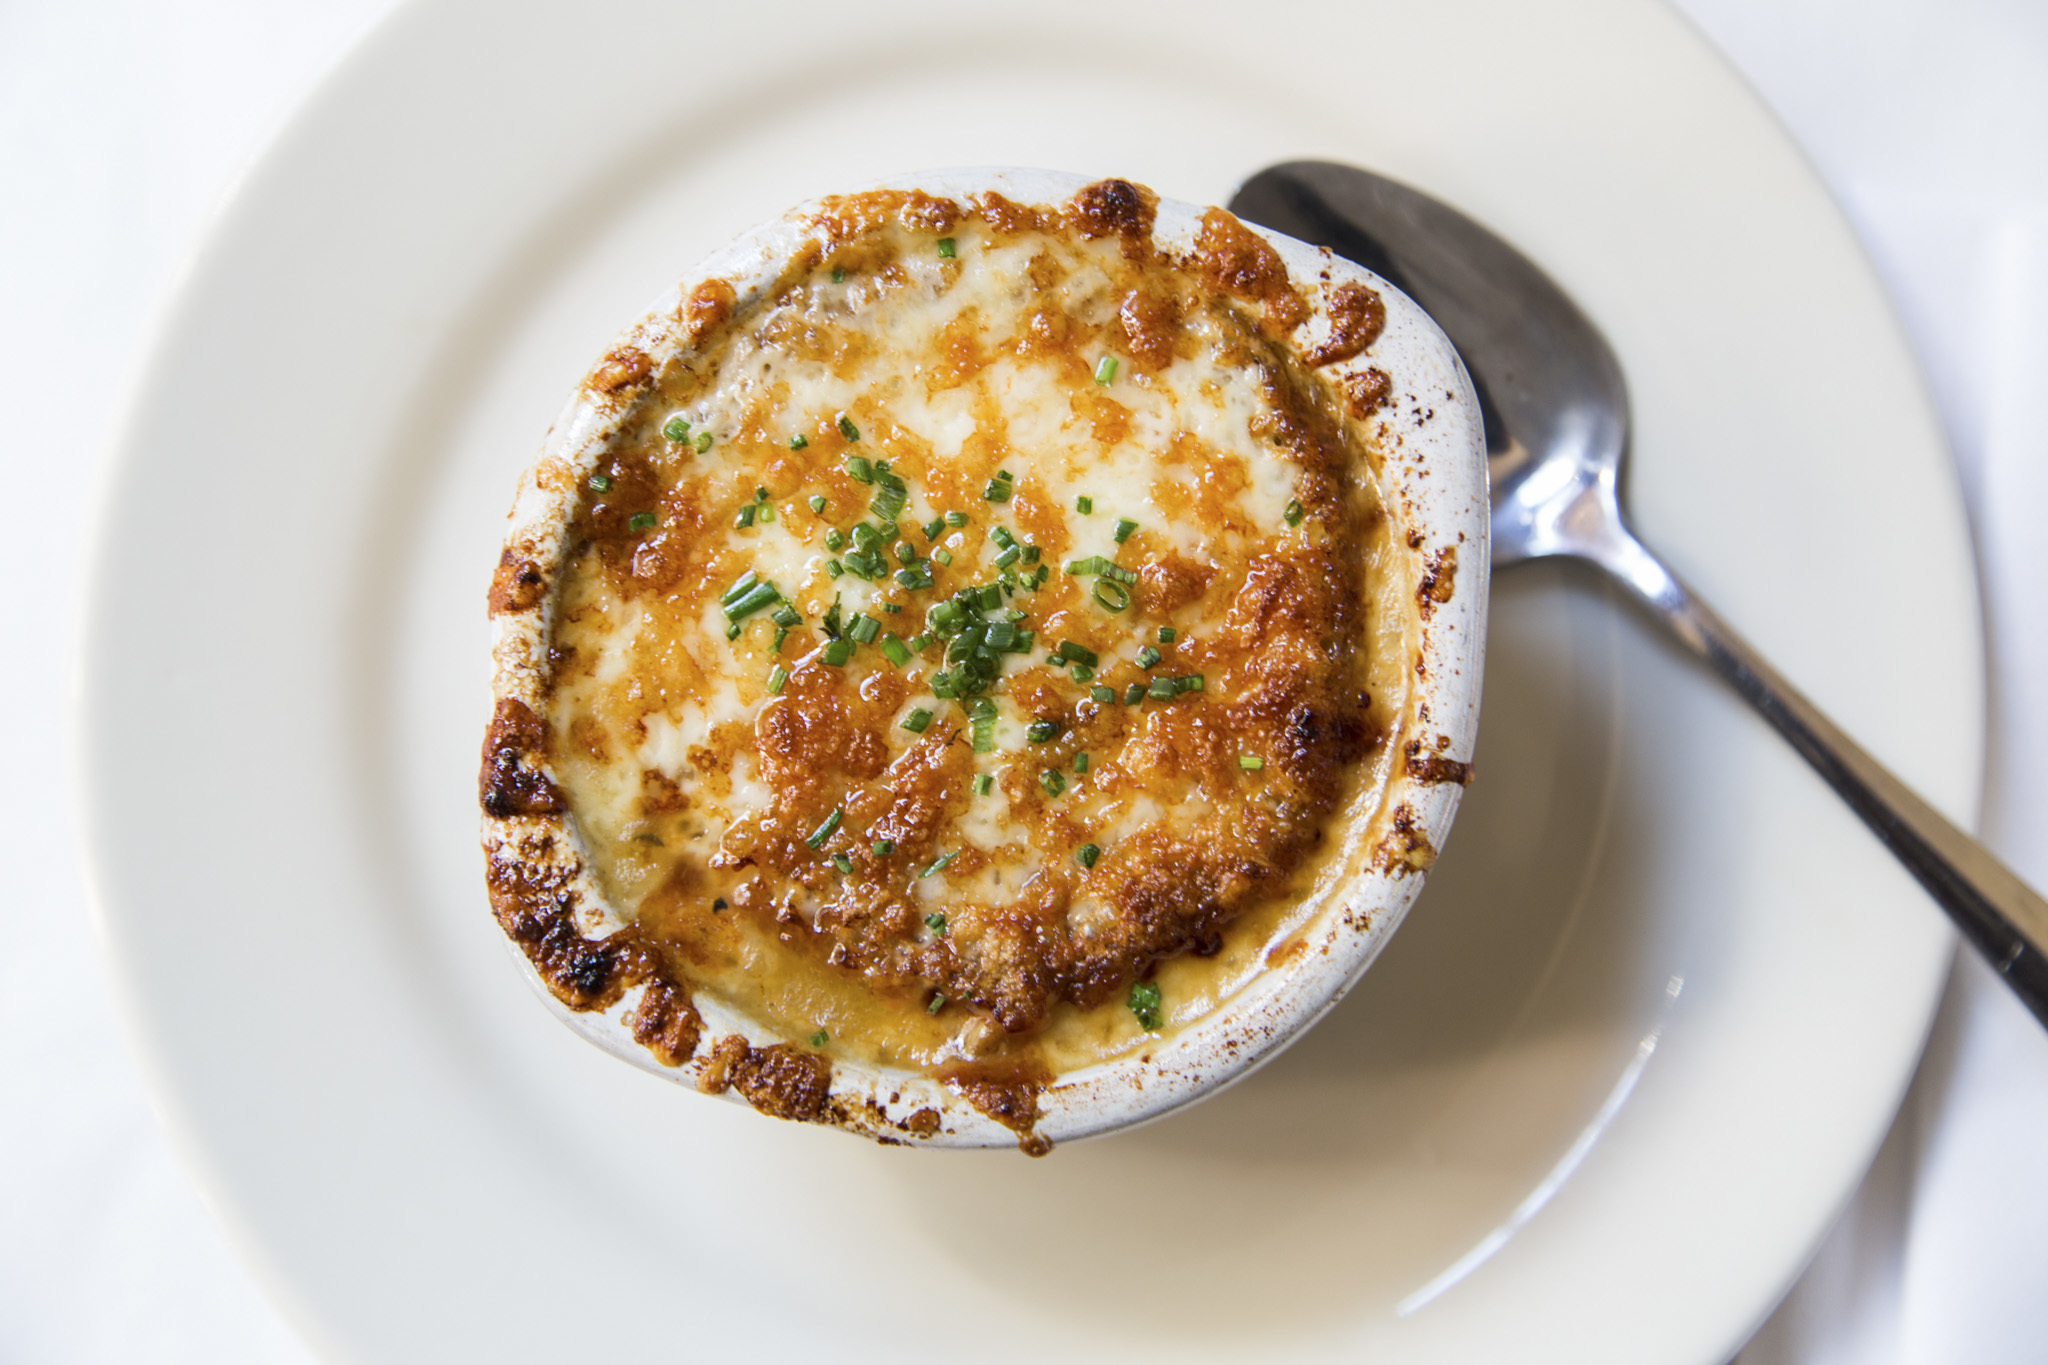 French Onion Soup at Bistro Campagne